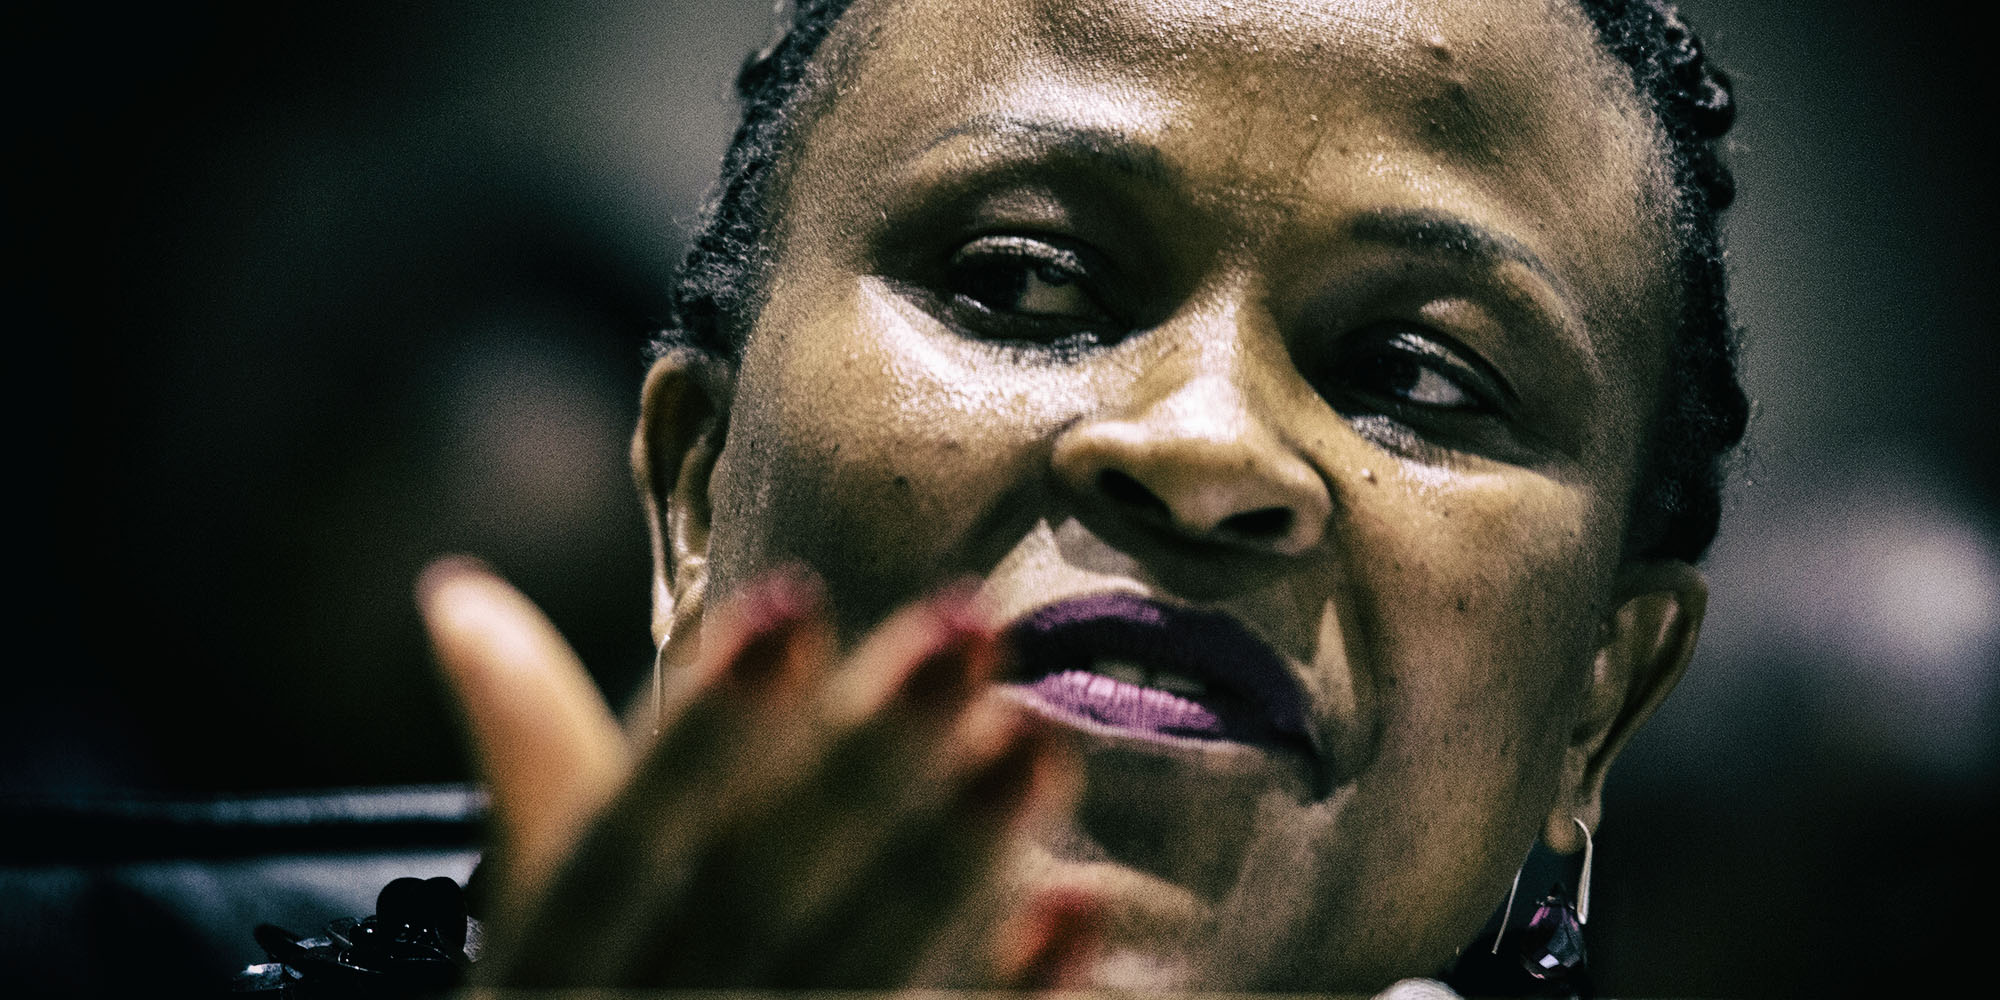 Independent panel named for next step in inquiry into Public Protector's fitness for office - Daily Maverick